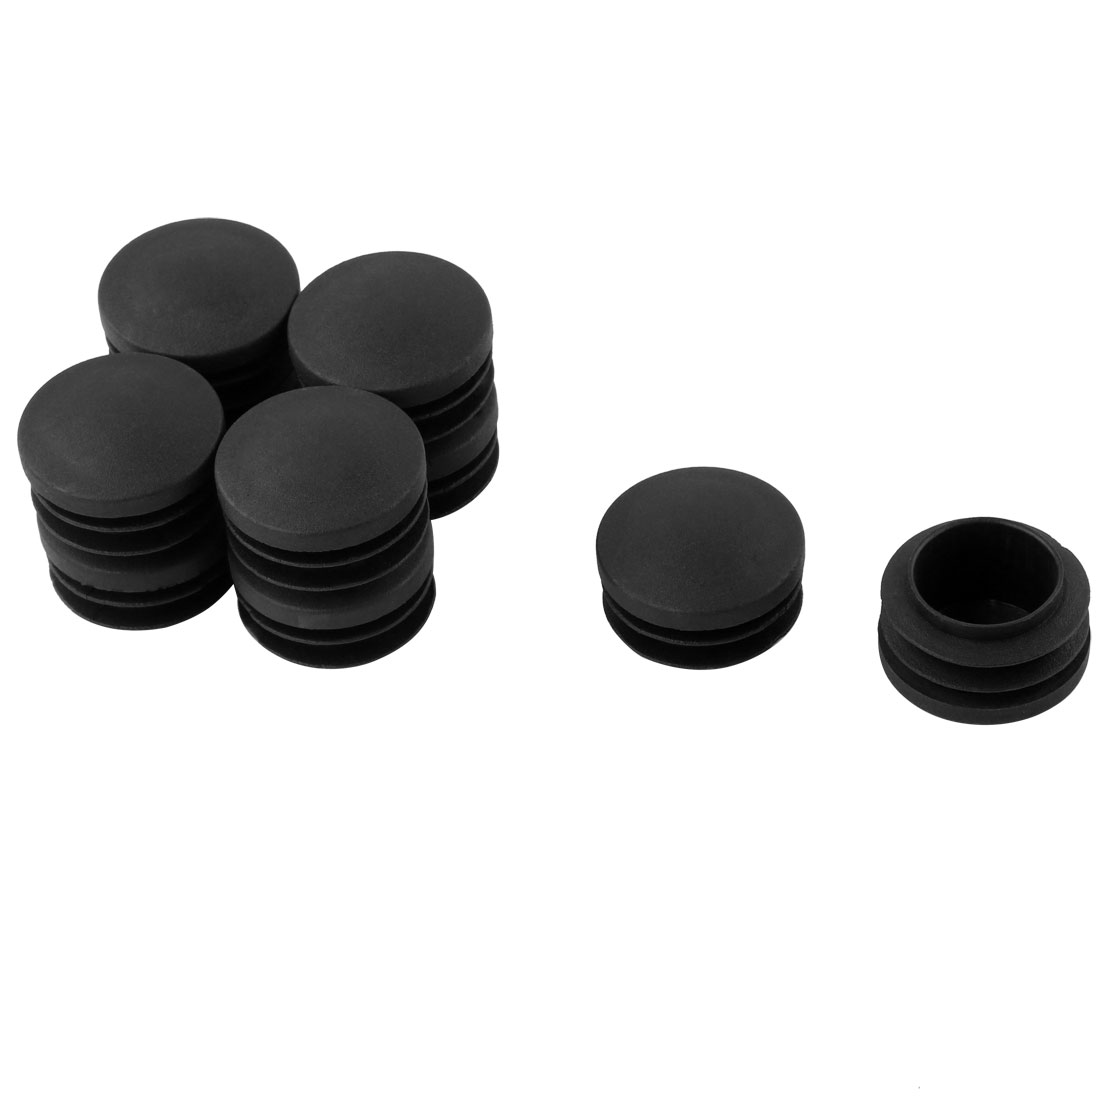 Furniture Table Chair Plastic Round Tube Insert Tubing Cap Pipe Cover Black 35mm Dia 10pcs